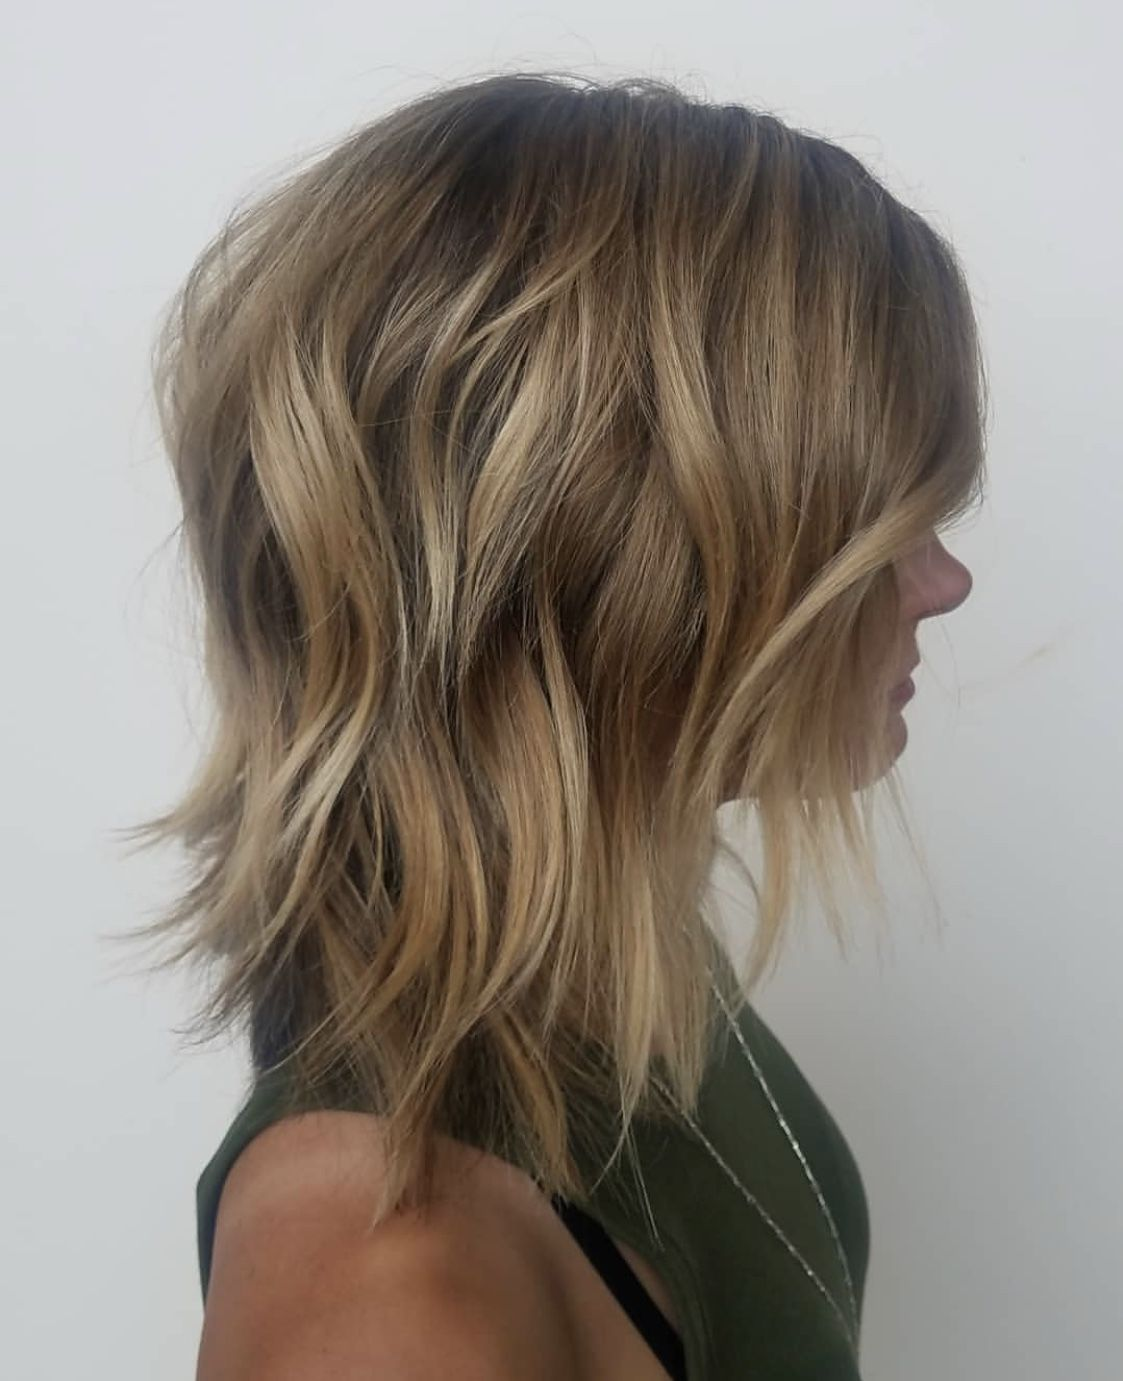 Pin by sanna montgomery on highlights pinterest hair and highlights